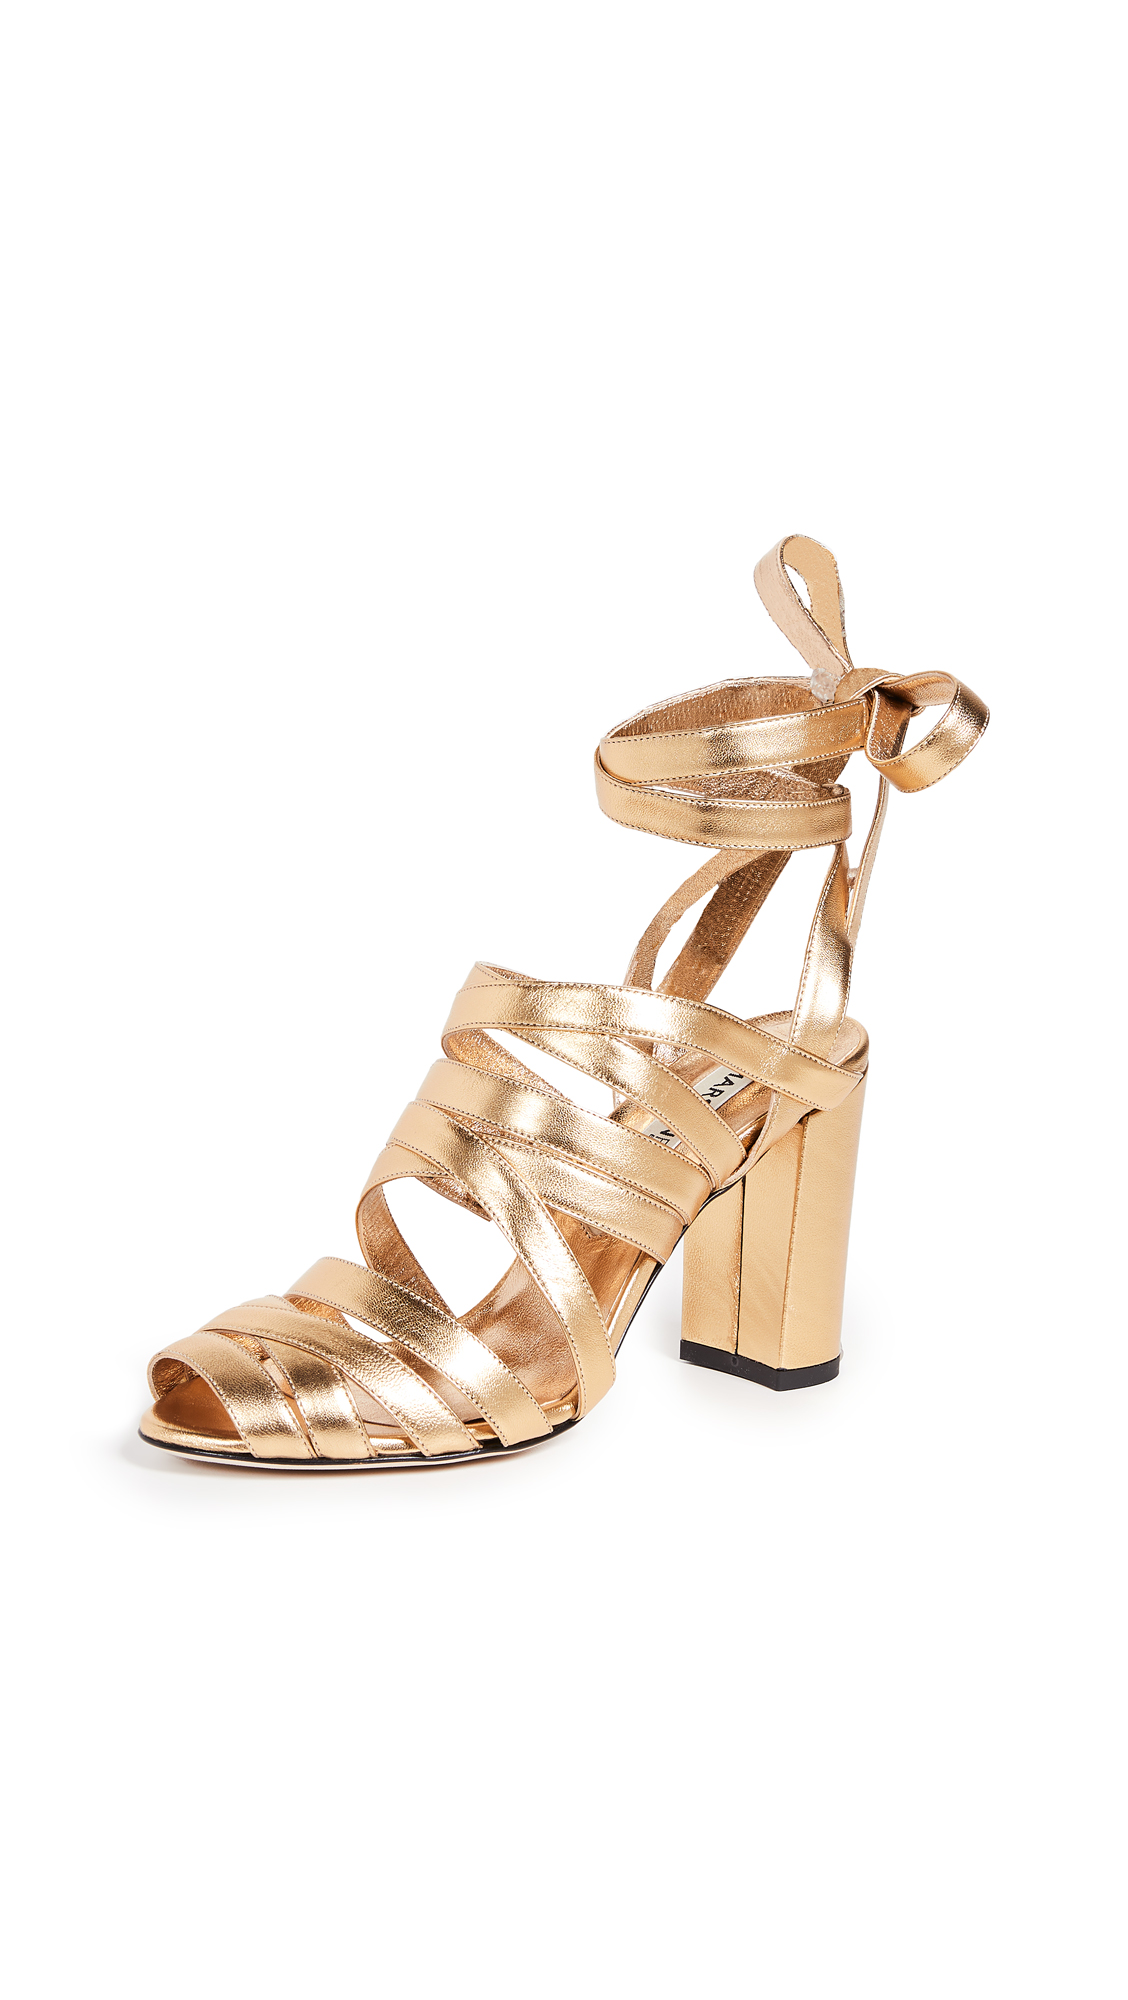 MARSKINRYYPPY Nadege Sandals - Gold